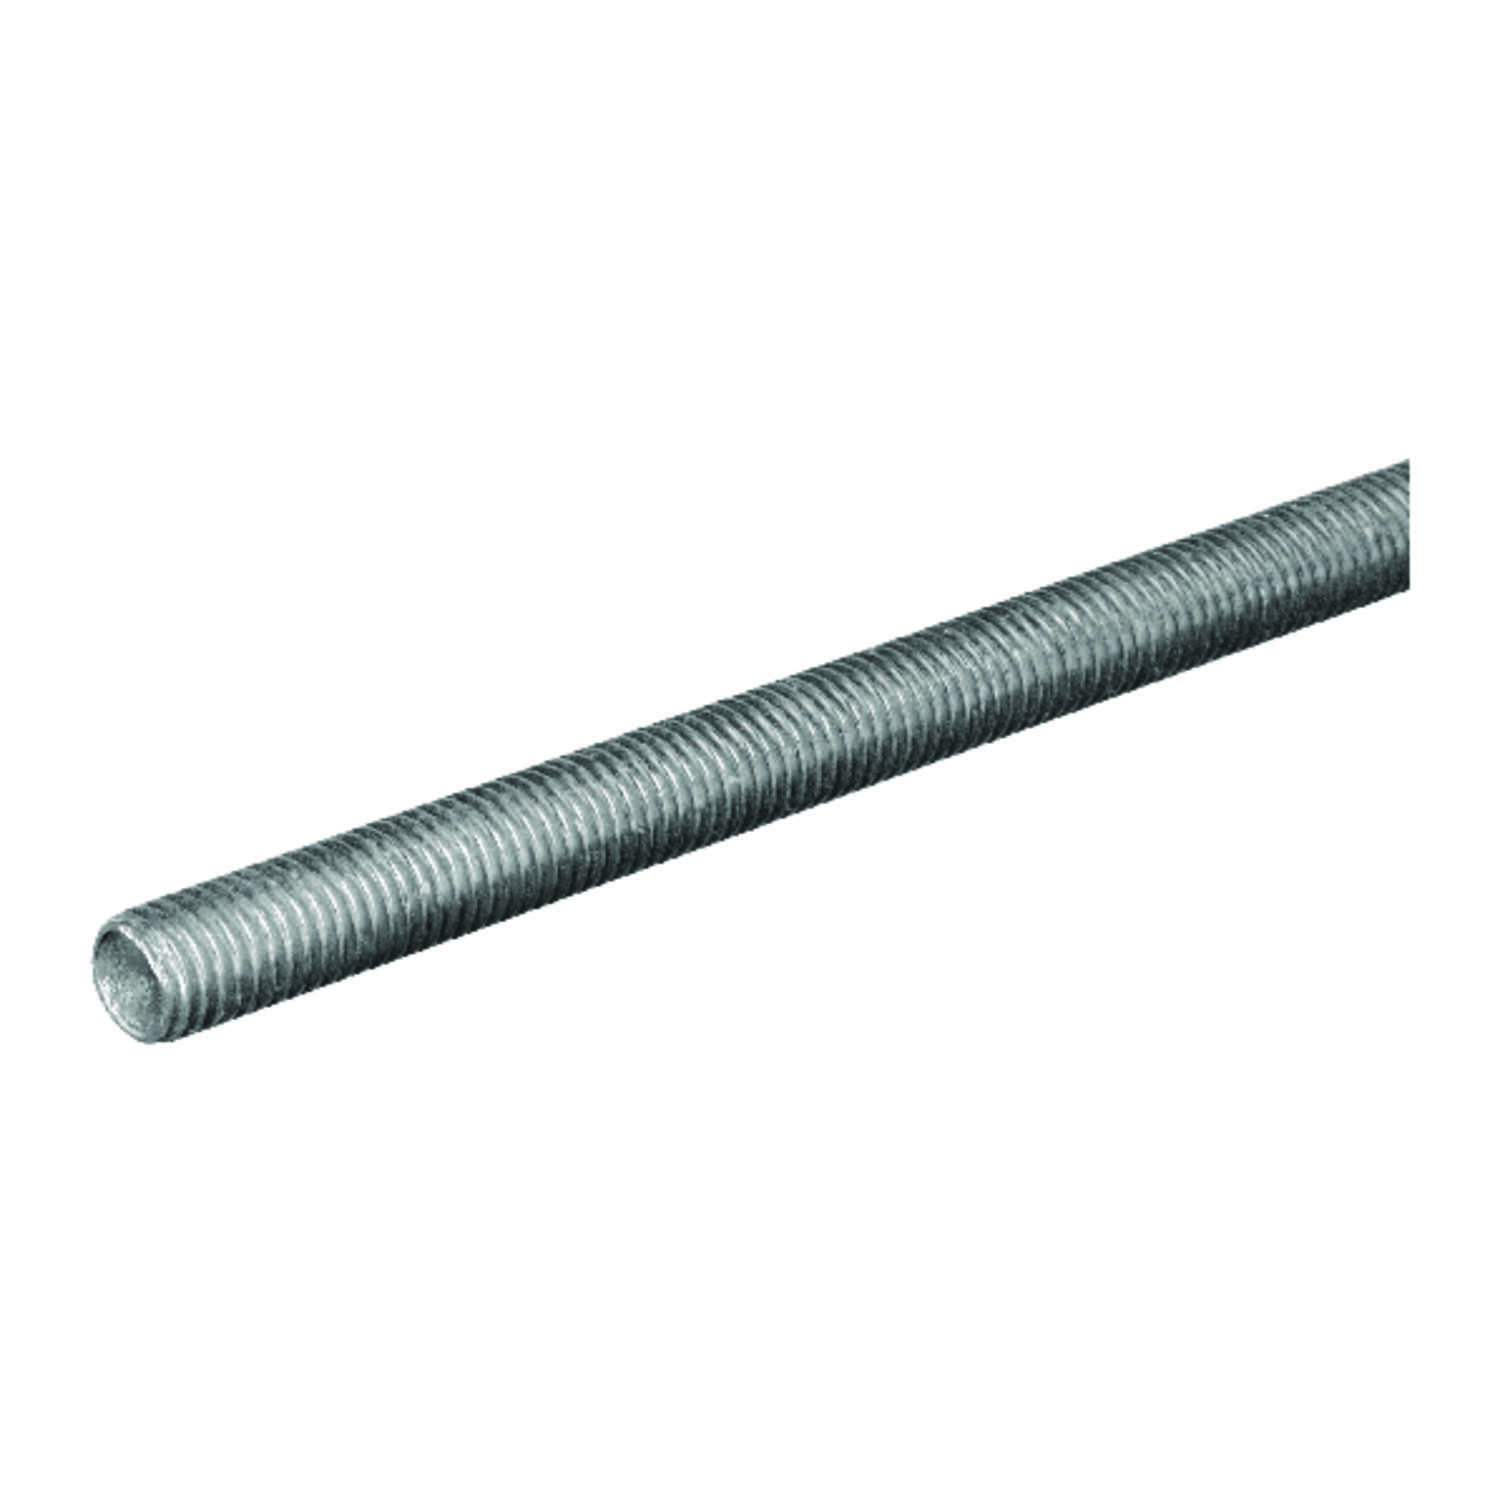 Boltmaster  3/8-16 in. Dia. x 36 in. L Steel  Threaded Rod